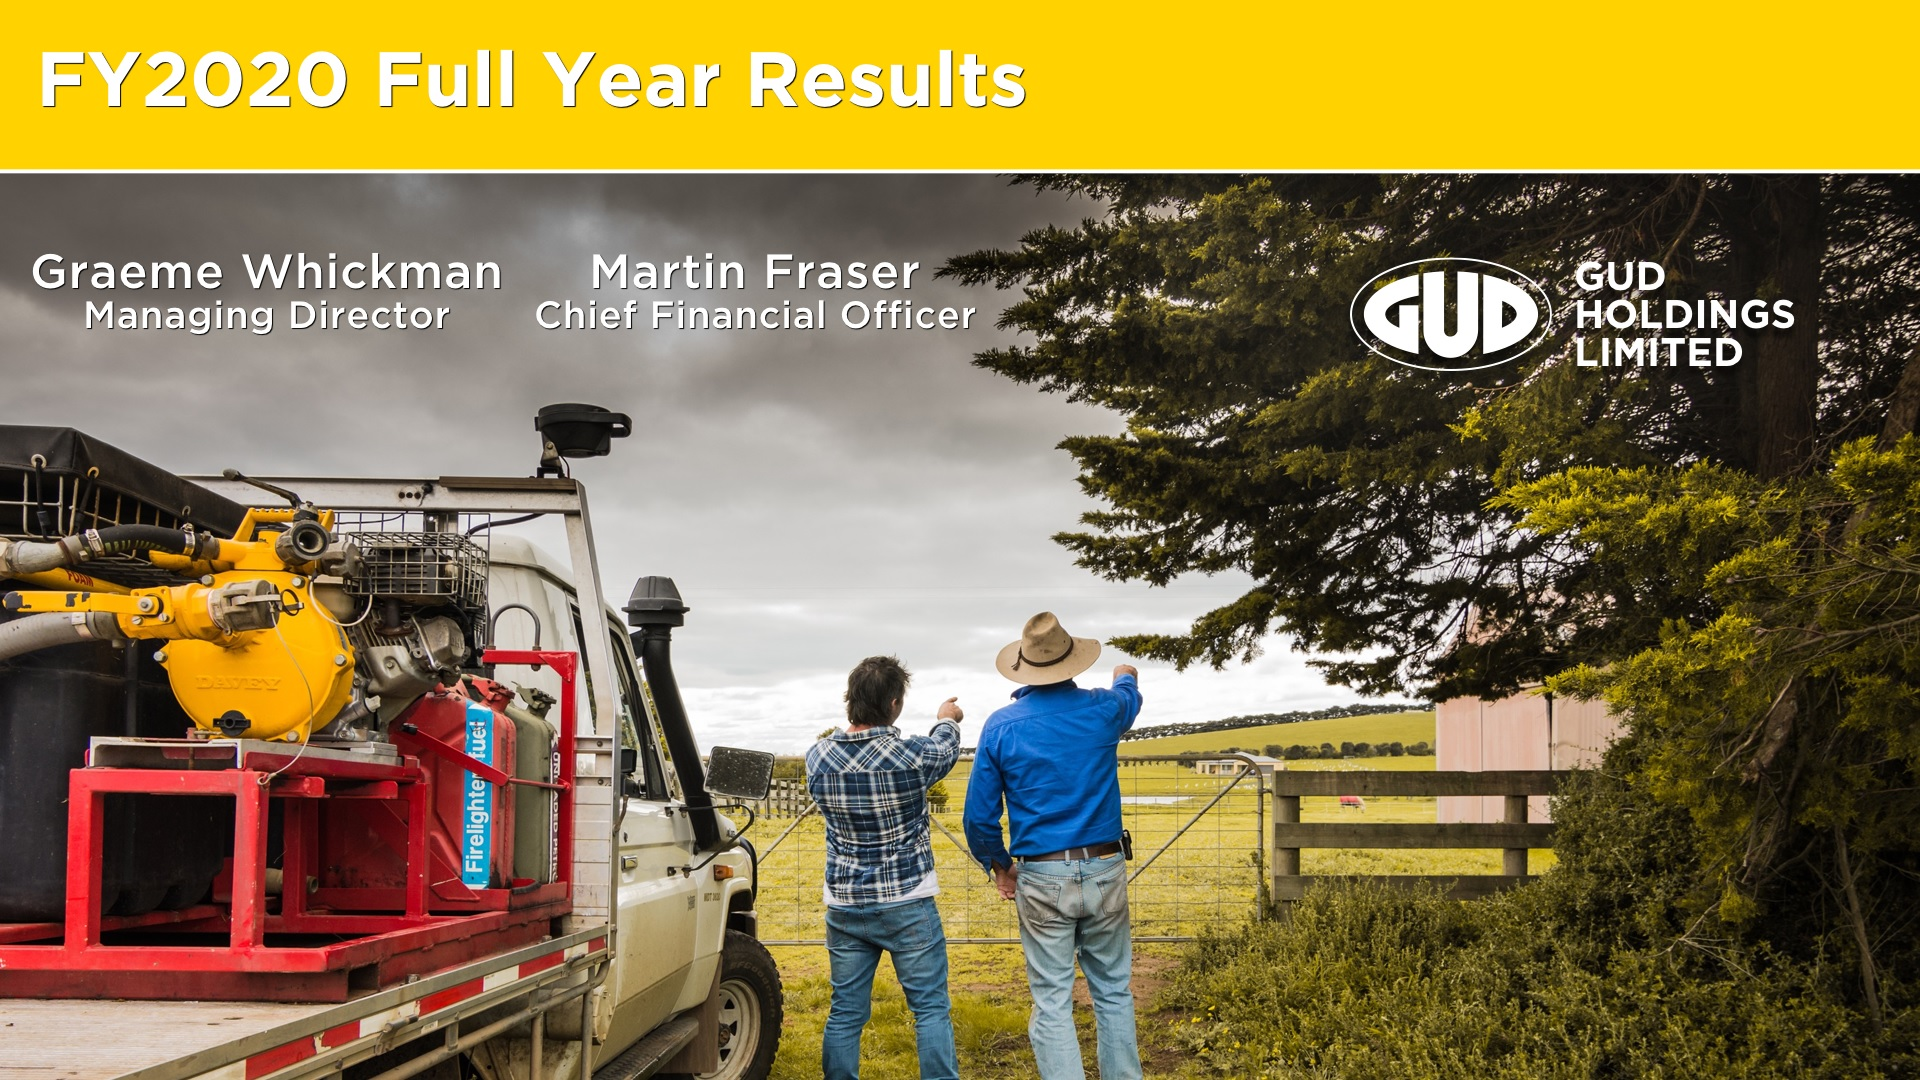 GUD Holdings Limited FY20 Full Year Results Presentation